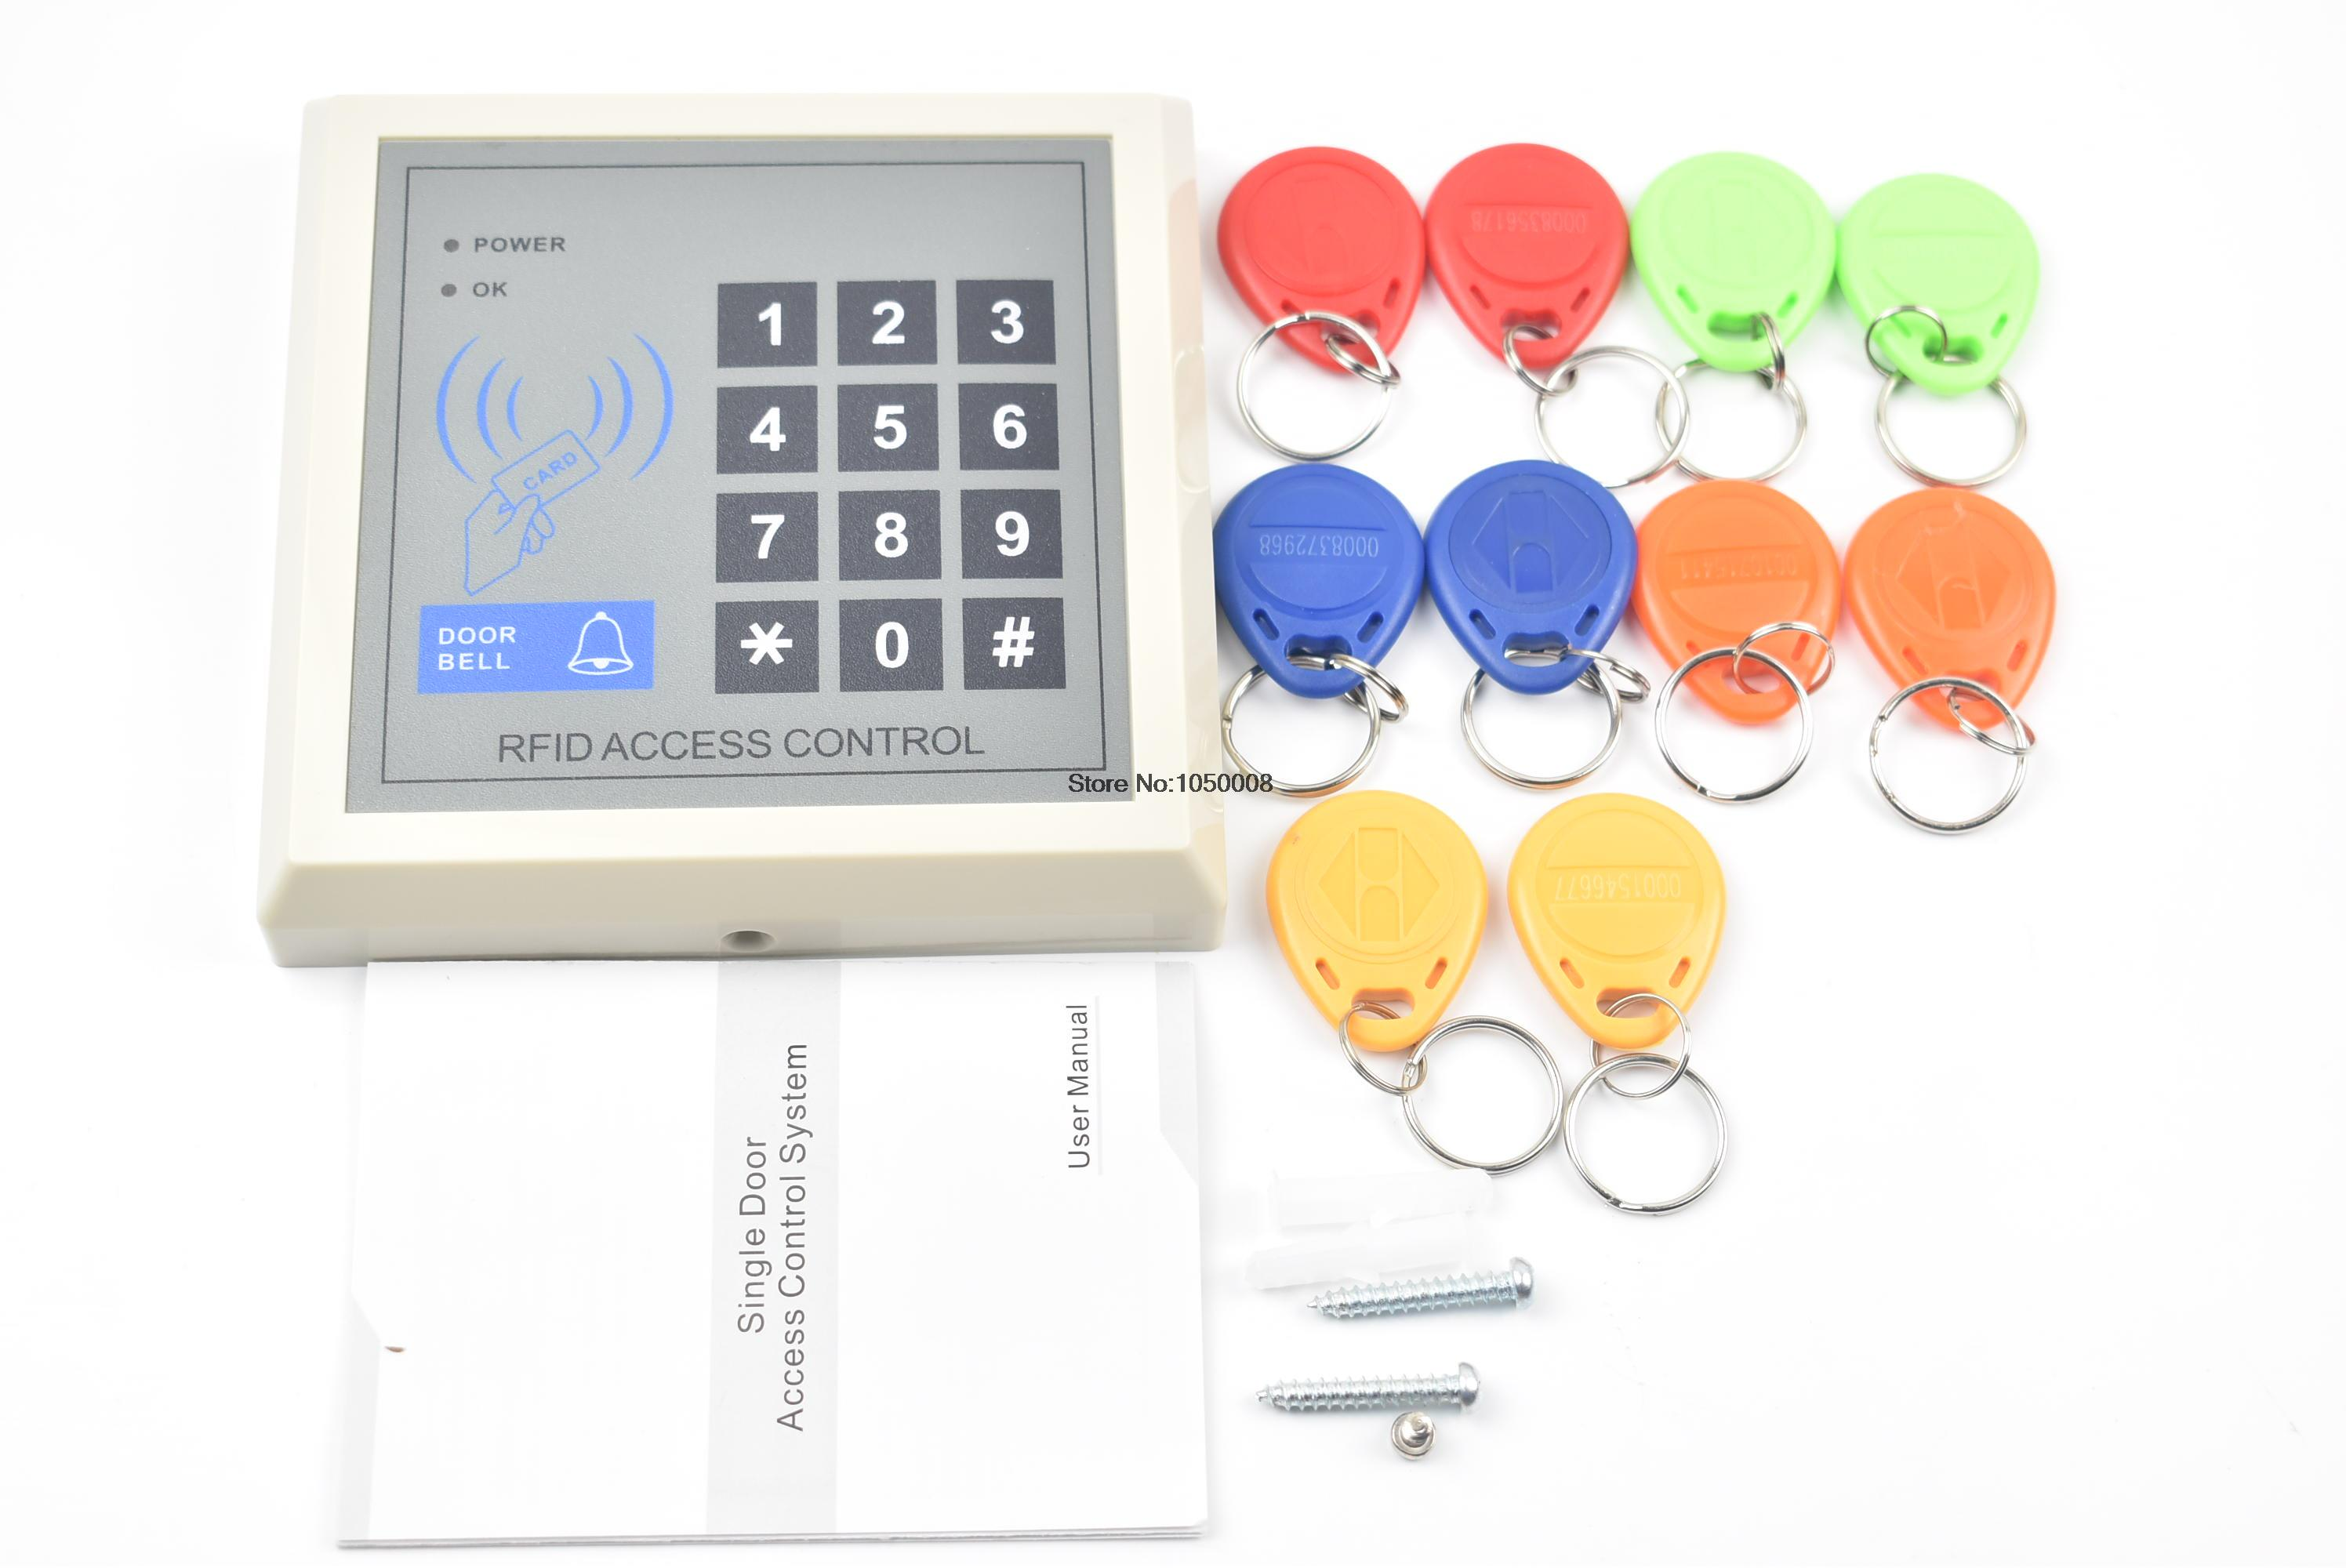 RFID Proximity Entry Door Lock Access Control System with 10 Key Fobs Home Offices Security System rfid standalone access control keypad 125khz card reader door lock with 10 proximity key fobs for door security system k2000